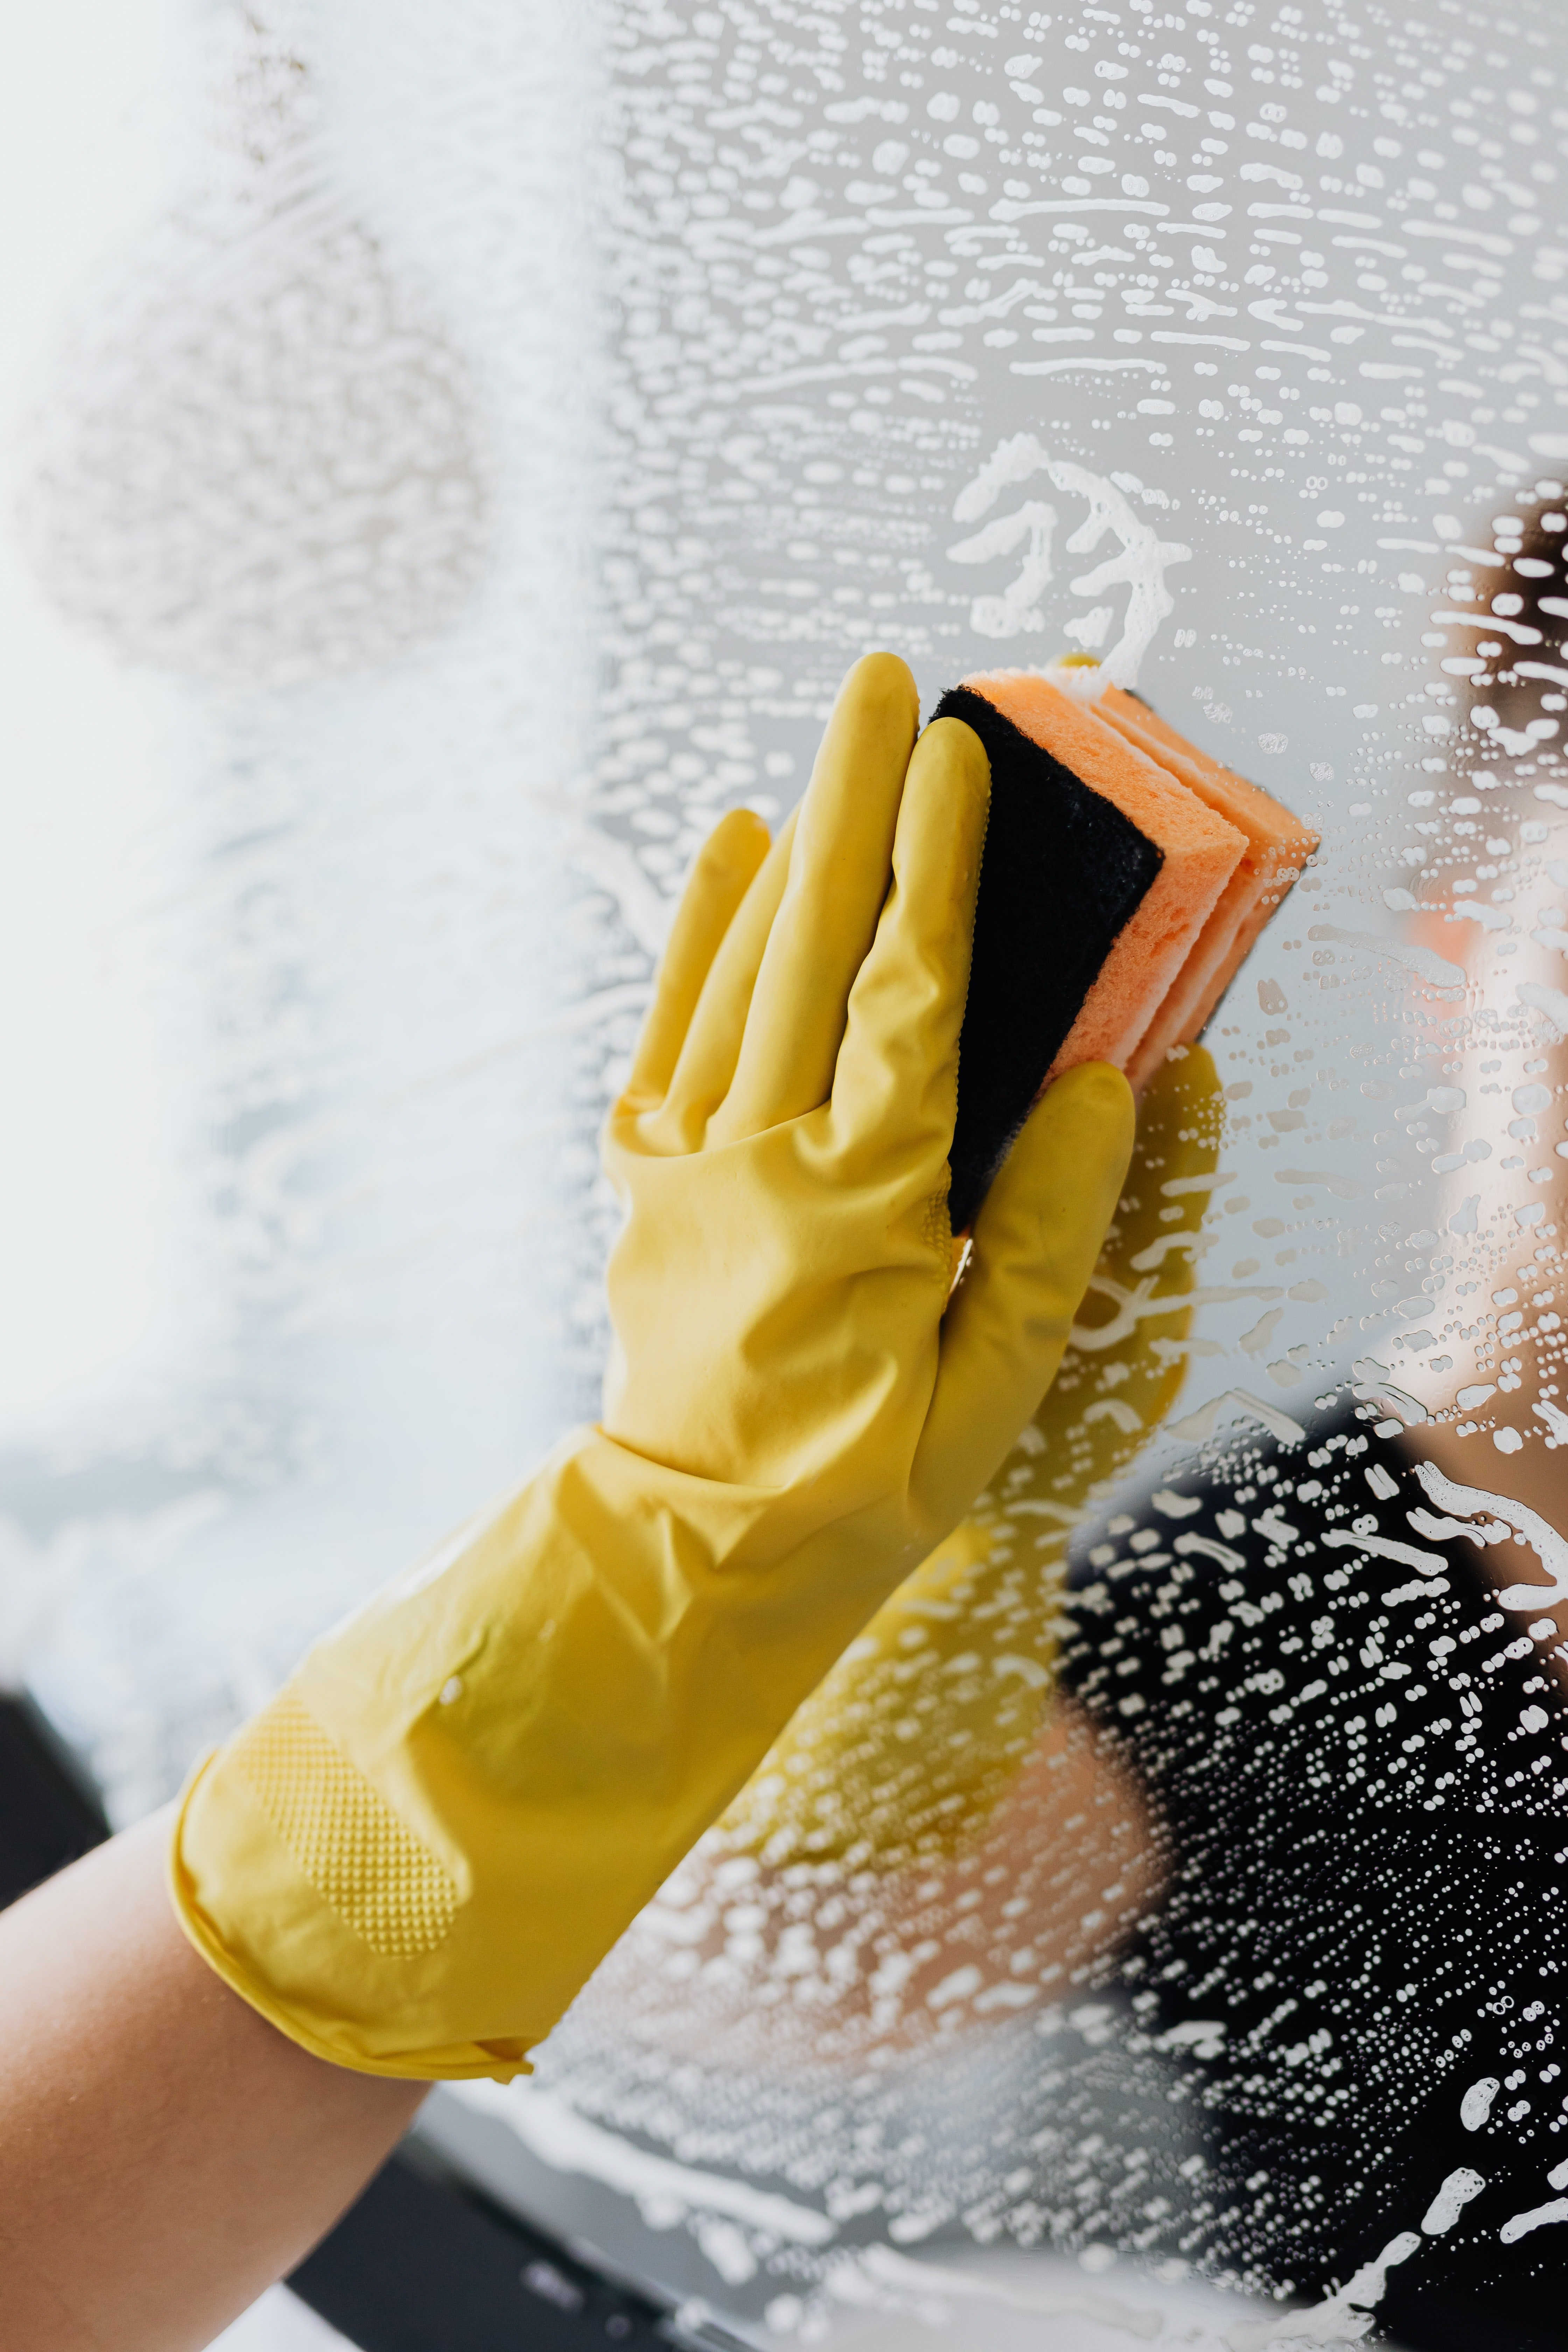 Pictured - A person cleaning the mirror with a sponge | Source: Pexels